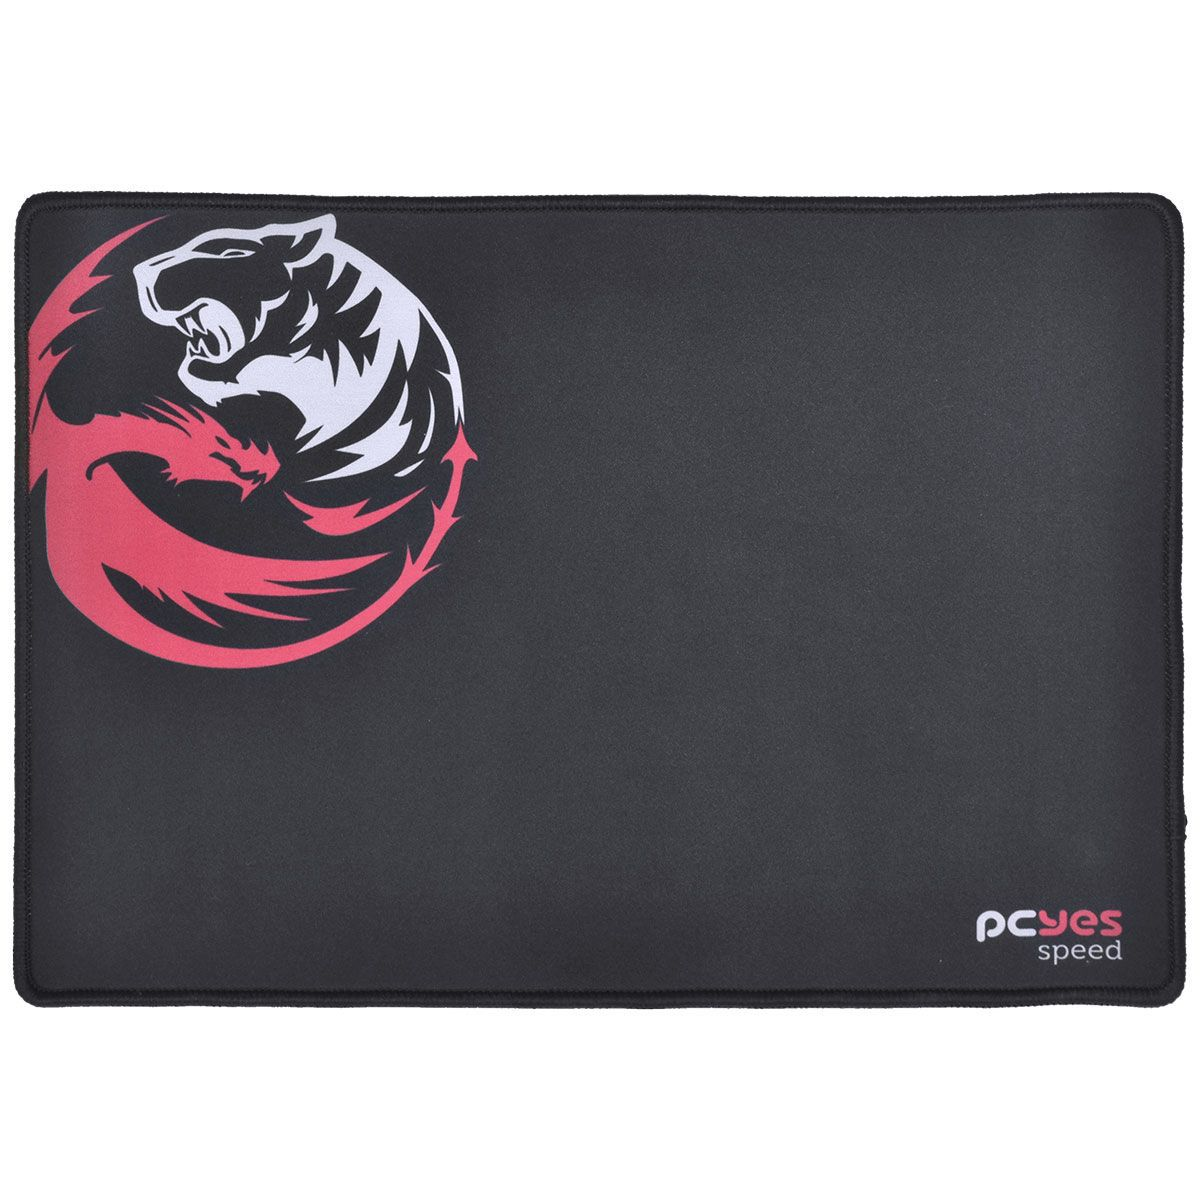 MOUSE PAD GAMER DASH SPEED 355X254X3MM PRETO